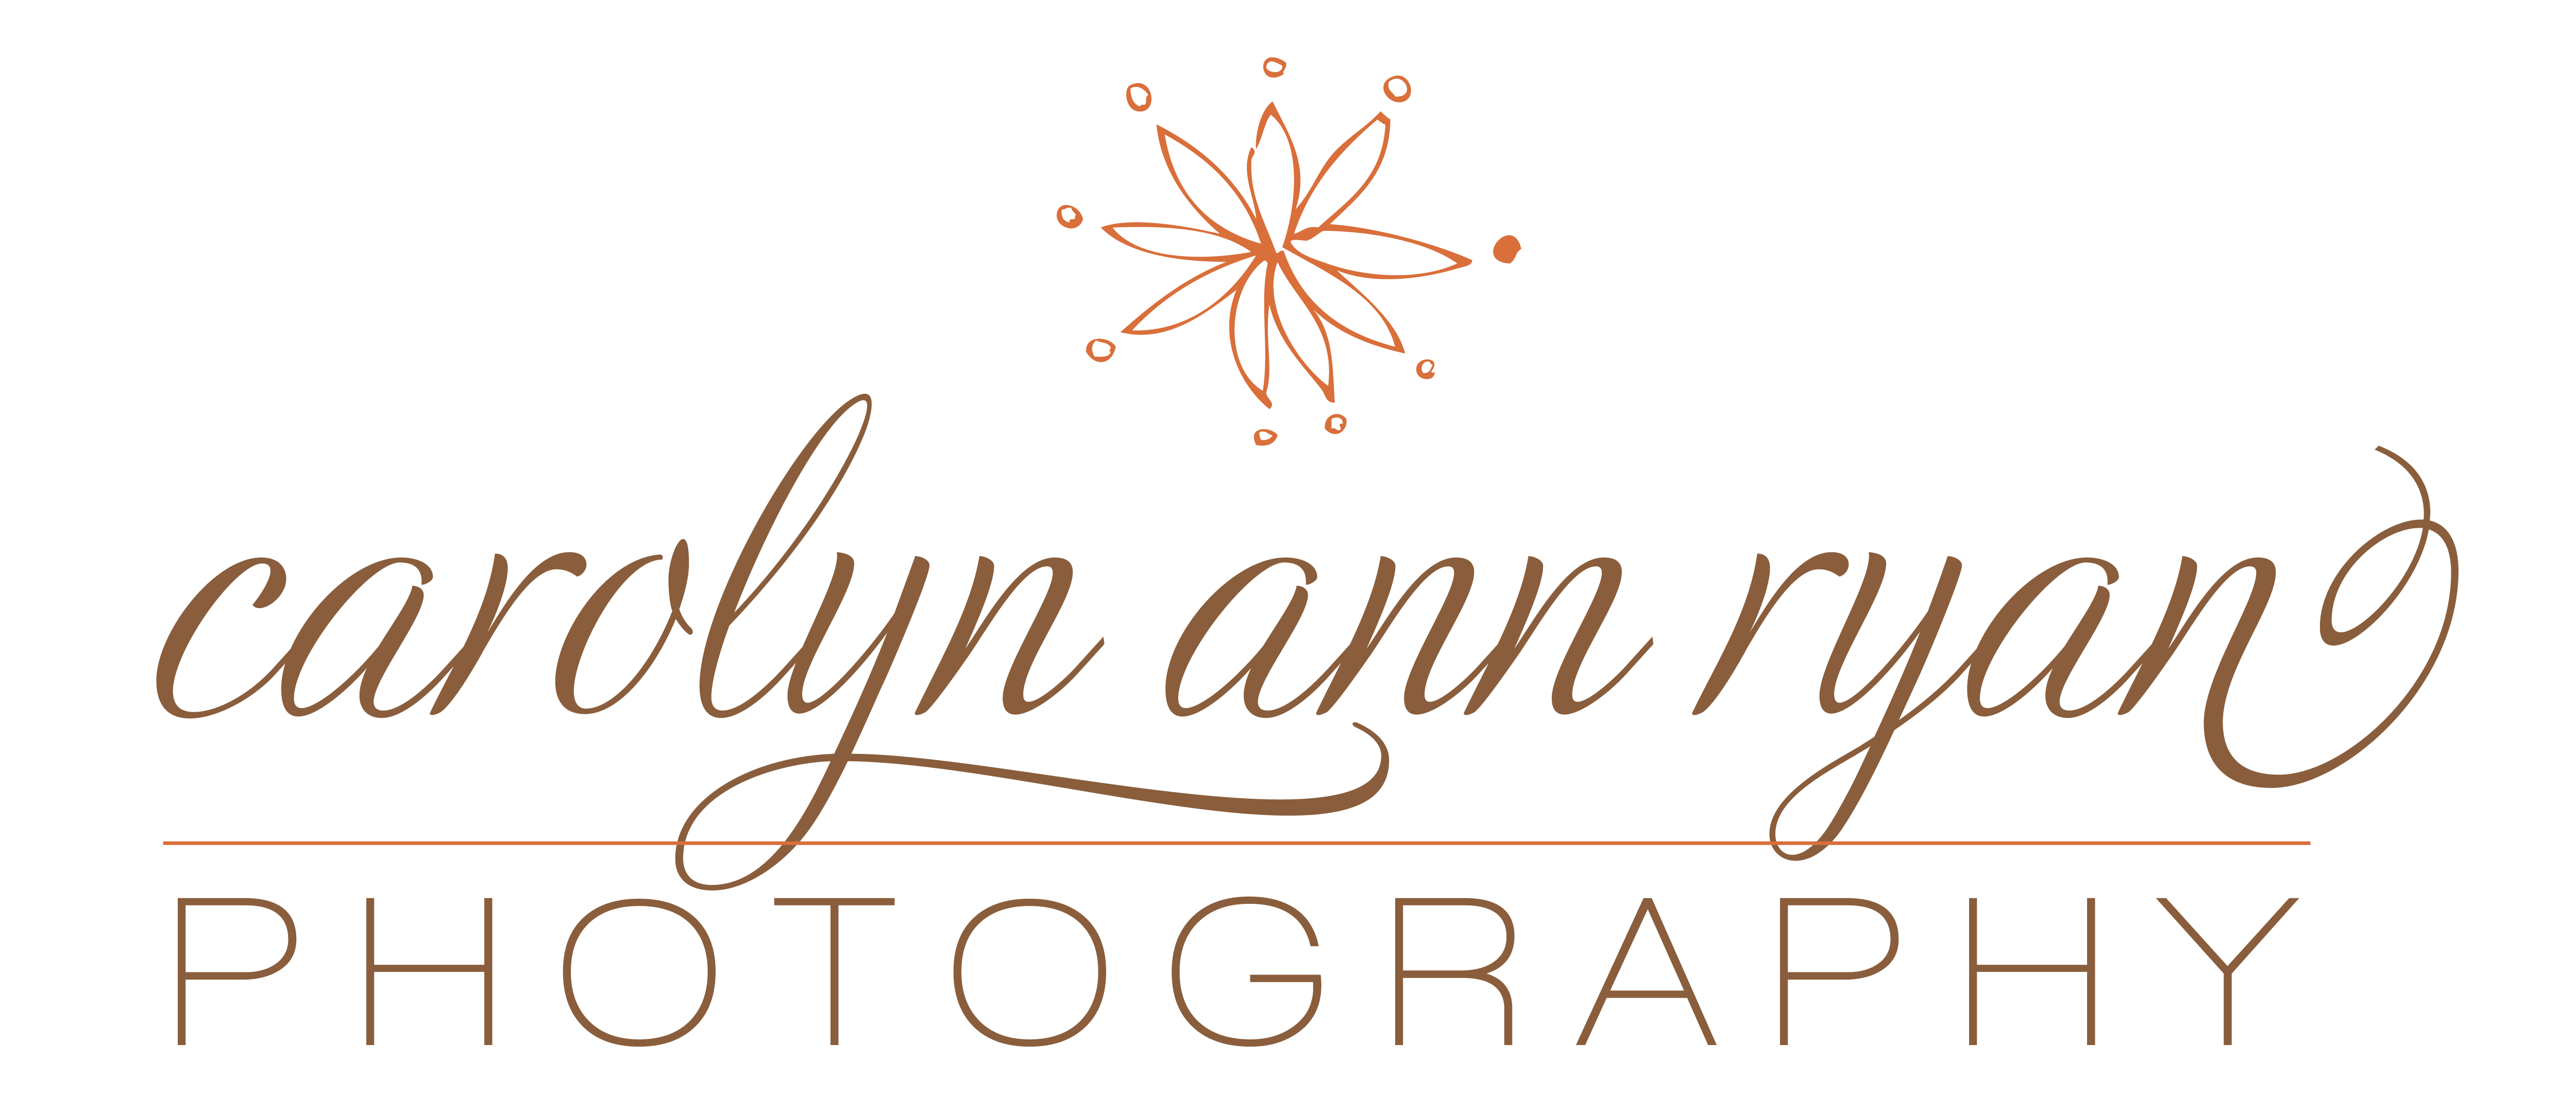 Carolyn Ann Ryan - Website